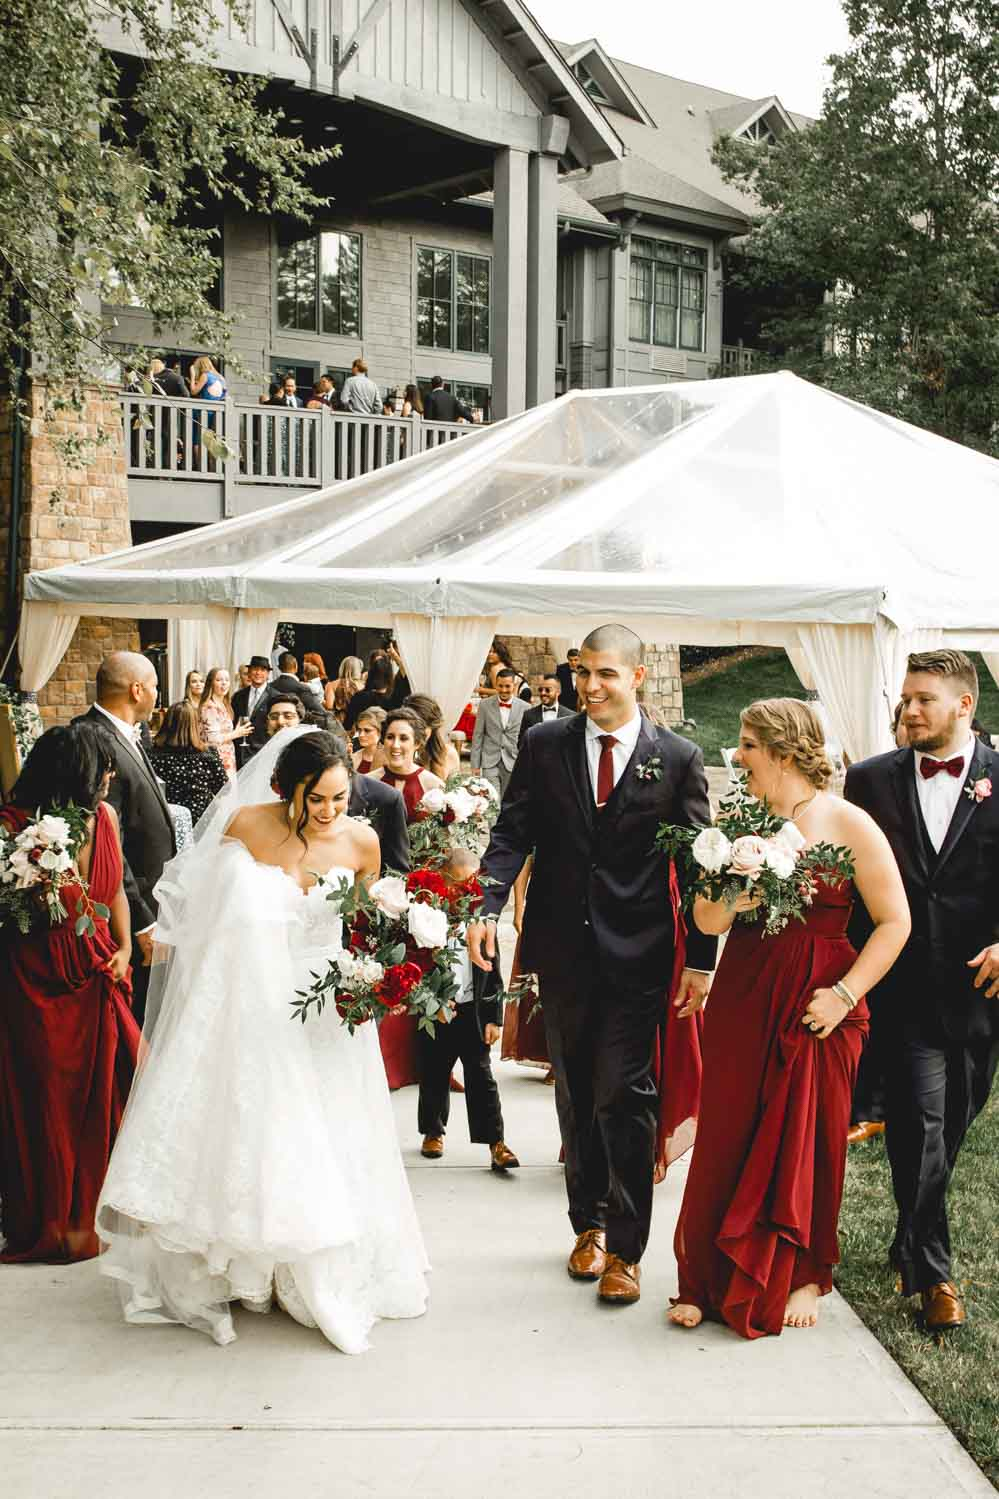 Photograph of a bride & groom and their wedding guests shortly after their outdoor wedding ceremony at the gorgeous Ballantyne Lodge & Hotel in Charlotte, North Carolina.